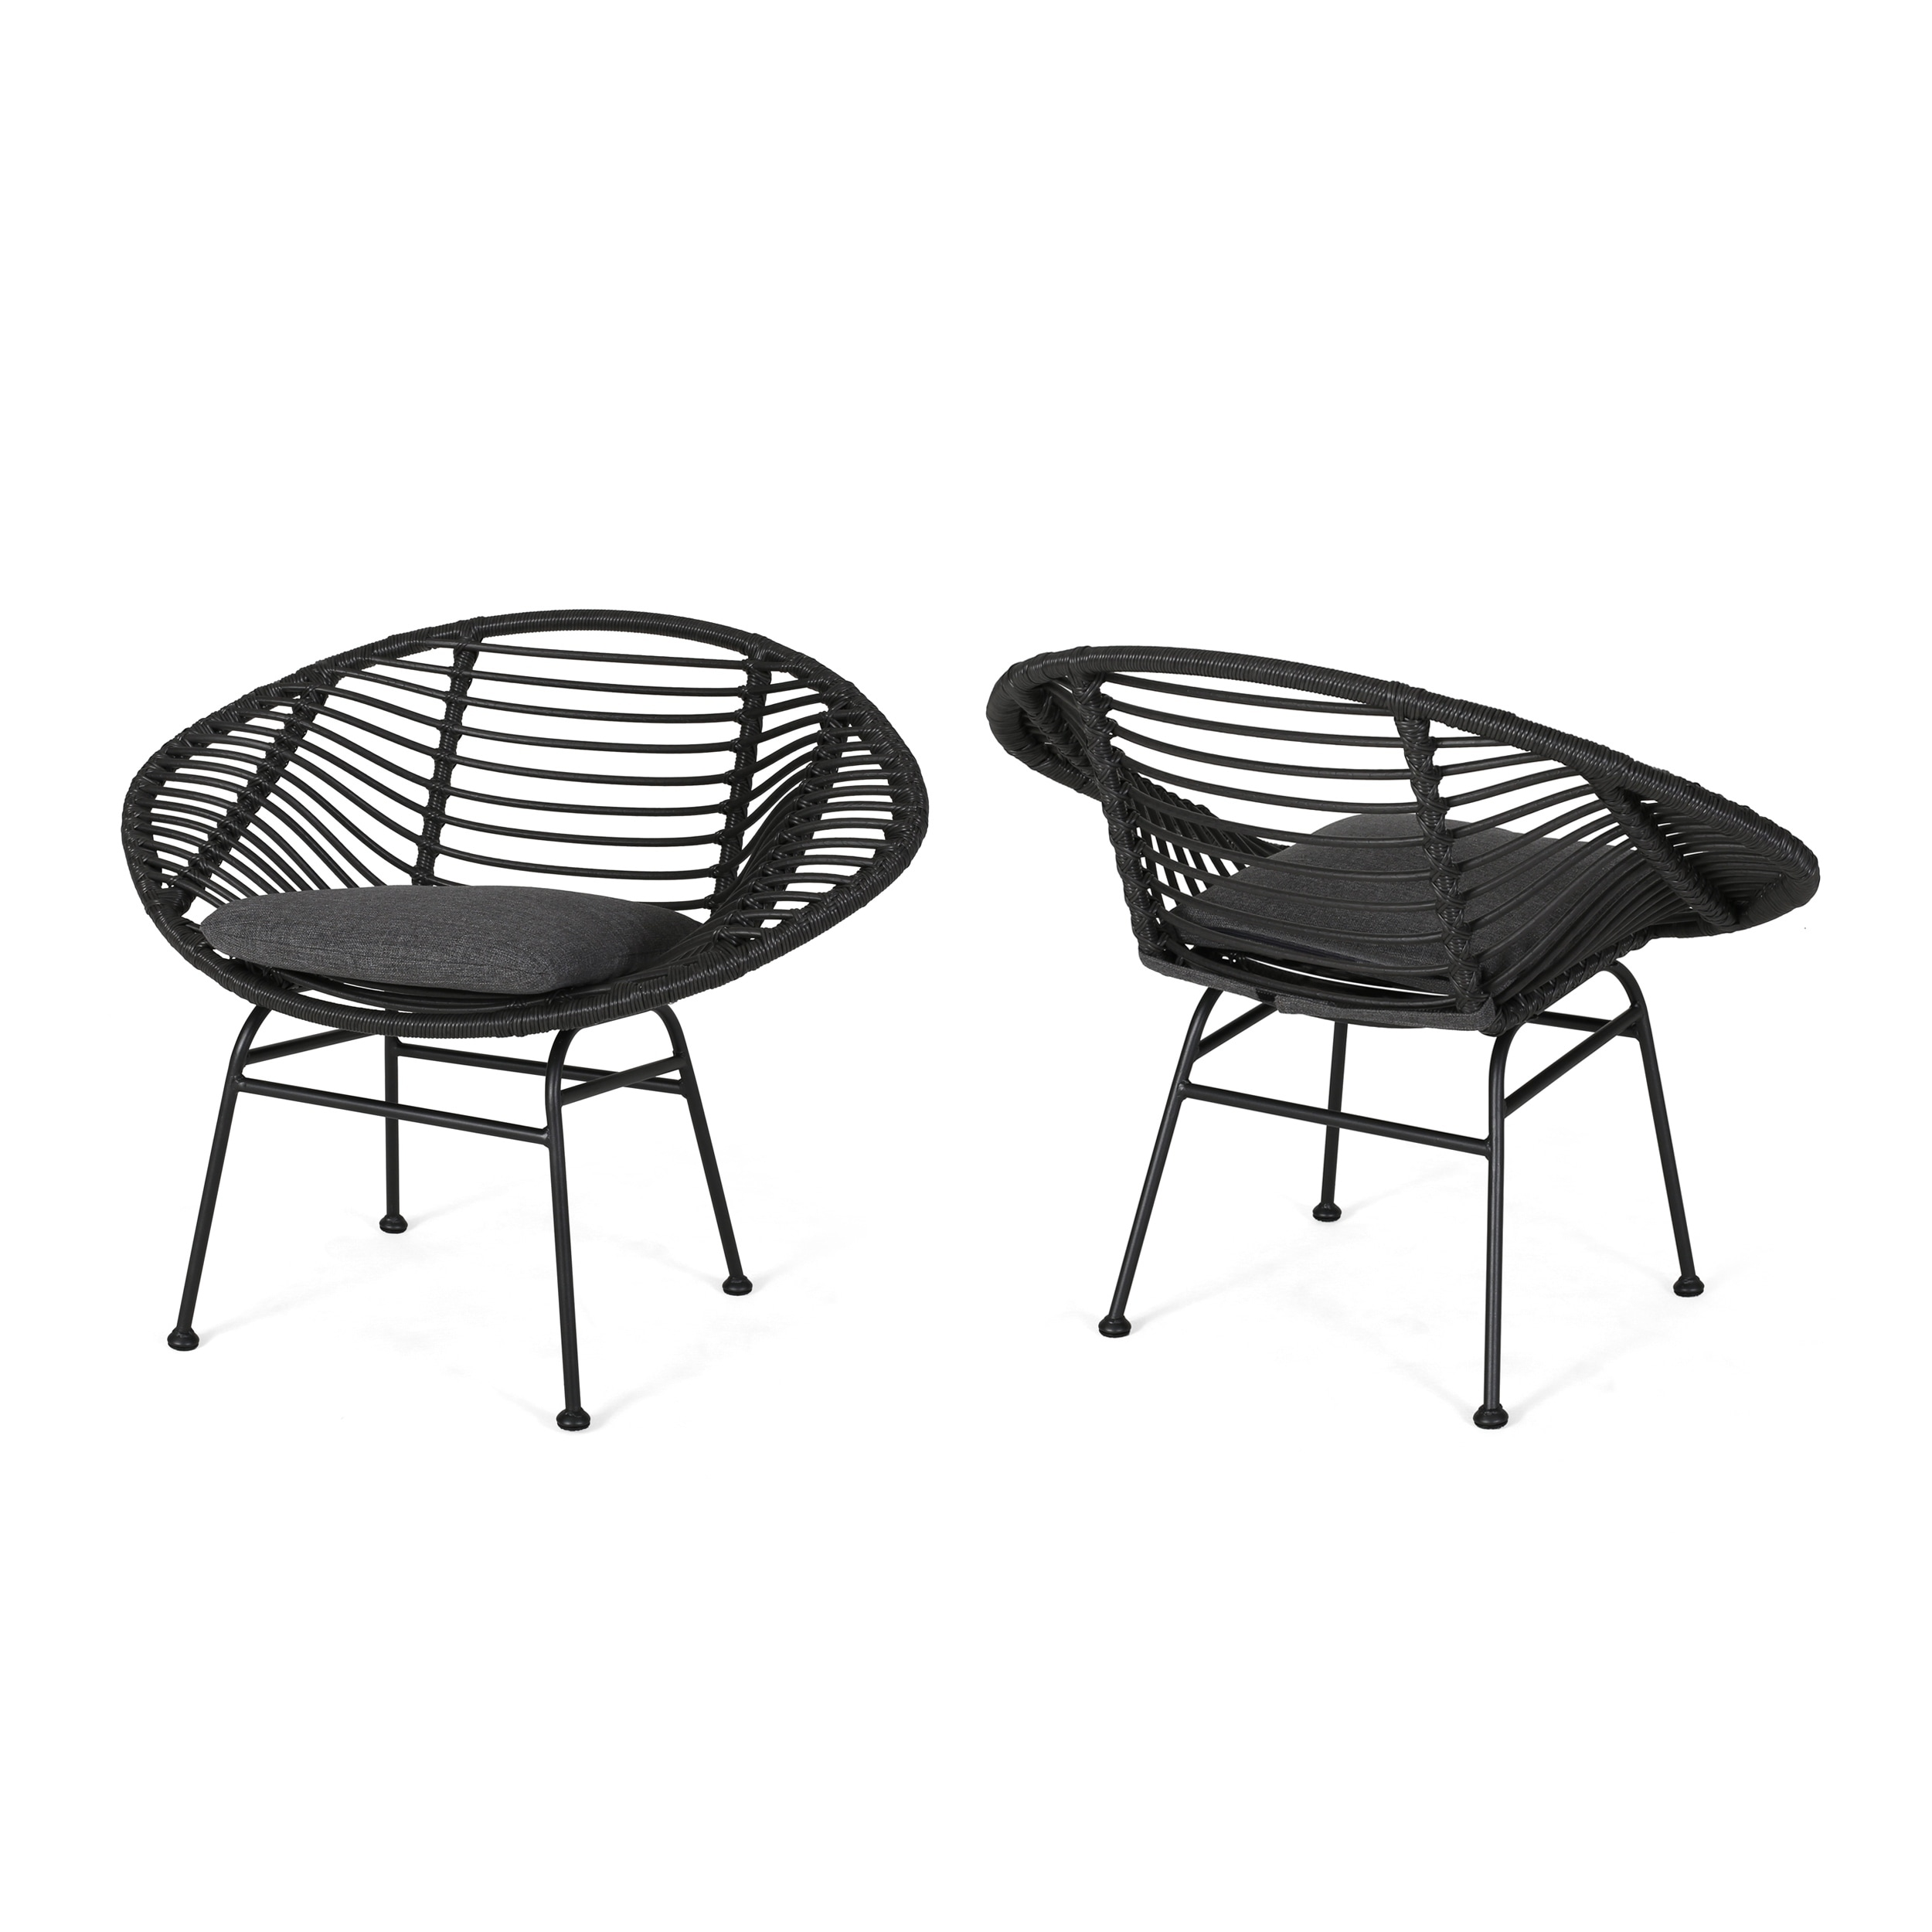 San Antonio Outdoor Woven Faux Rattan Chairs With Cushions Set Of 2 By Christopher Knight Home